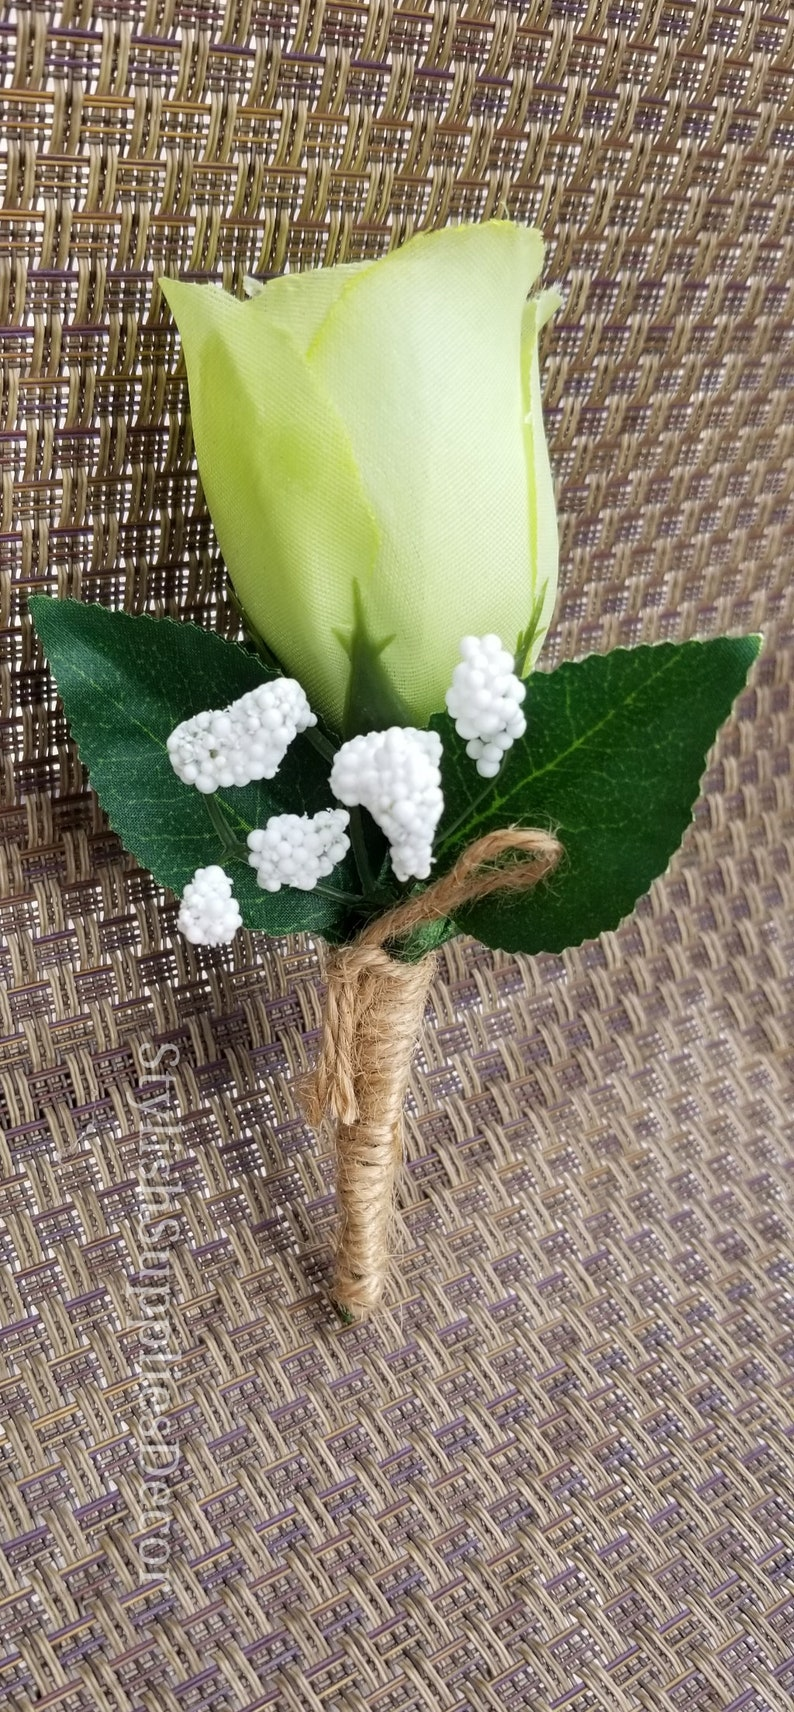 Rustic Boutonnieres Rustic Wedding Boutonnieres Rustic Corsages Rustic Wedding Corsage Rustic Men Boutonnieres Rustic Wedding Accessories